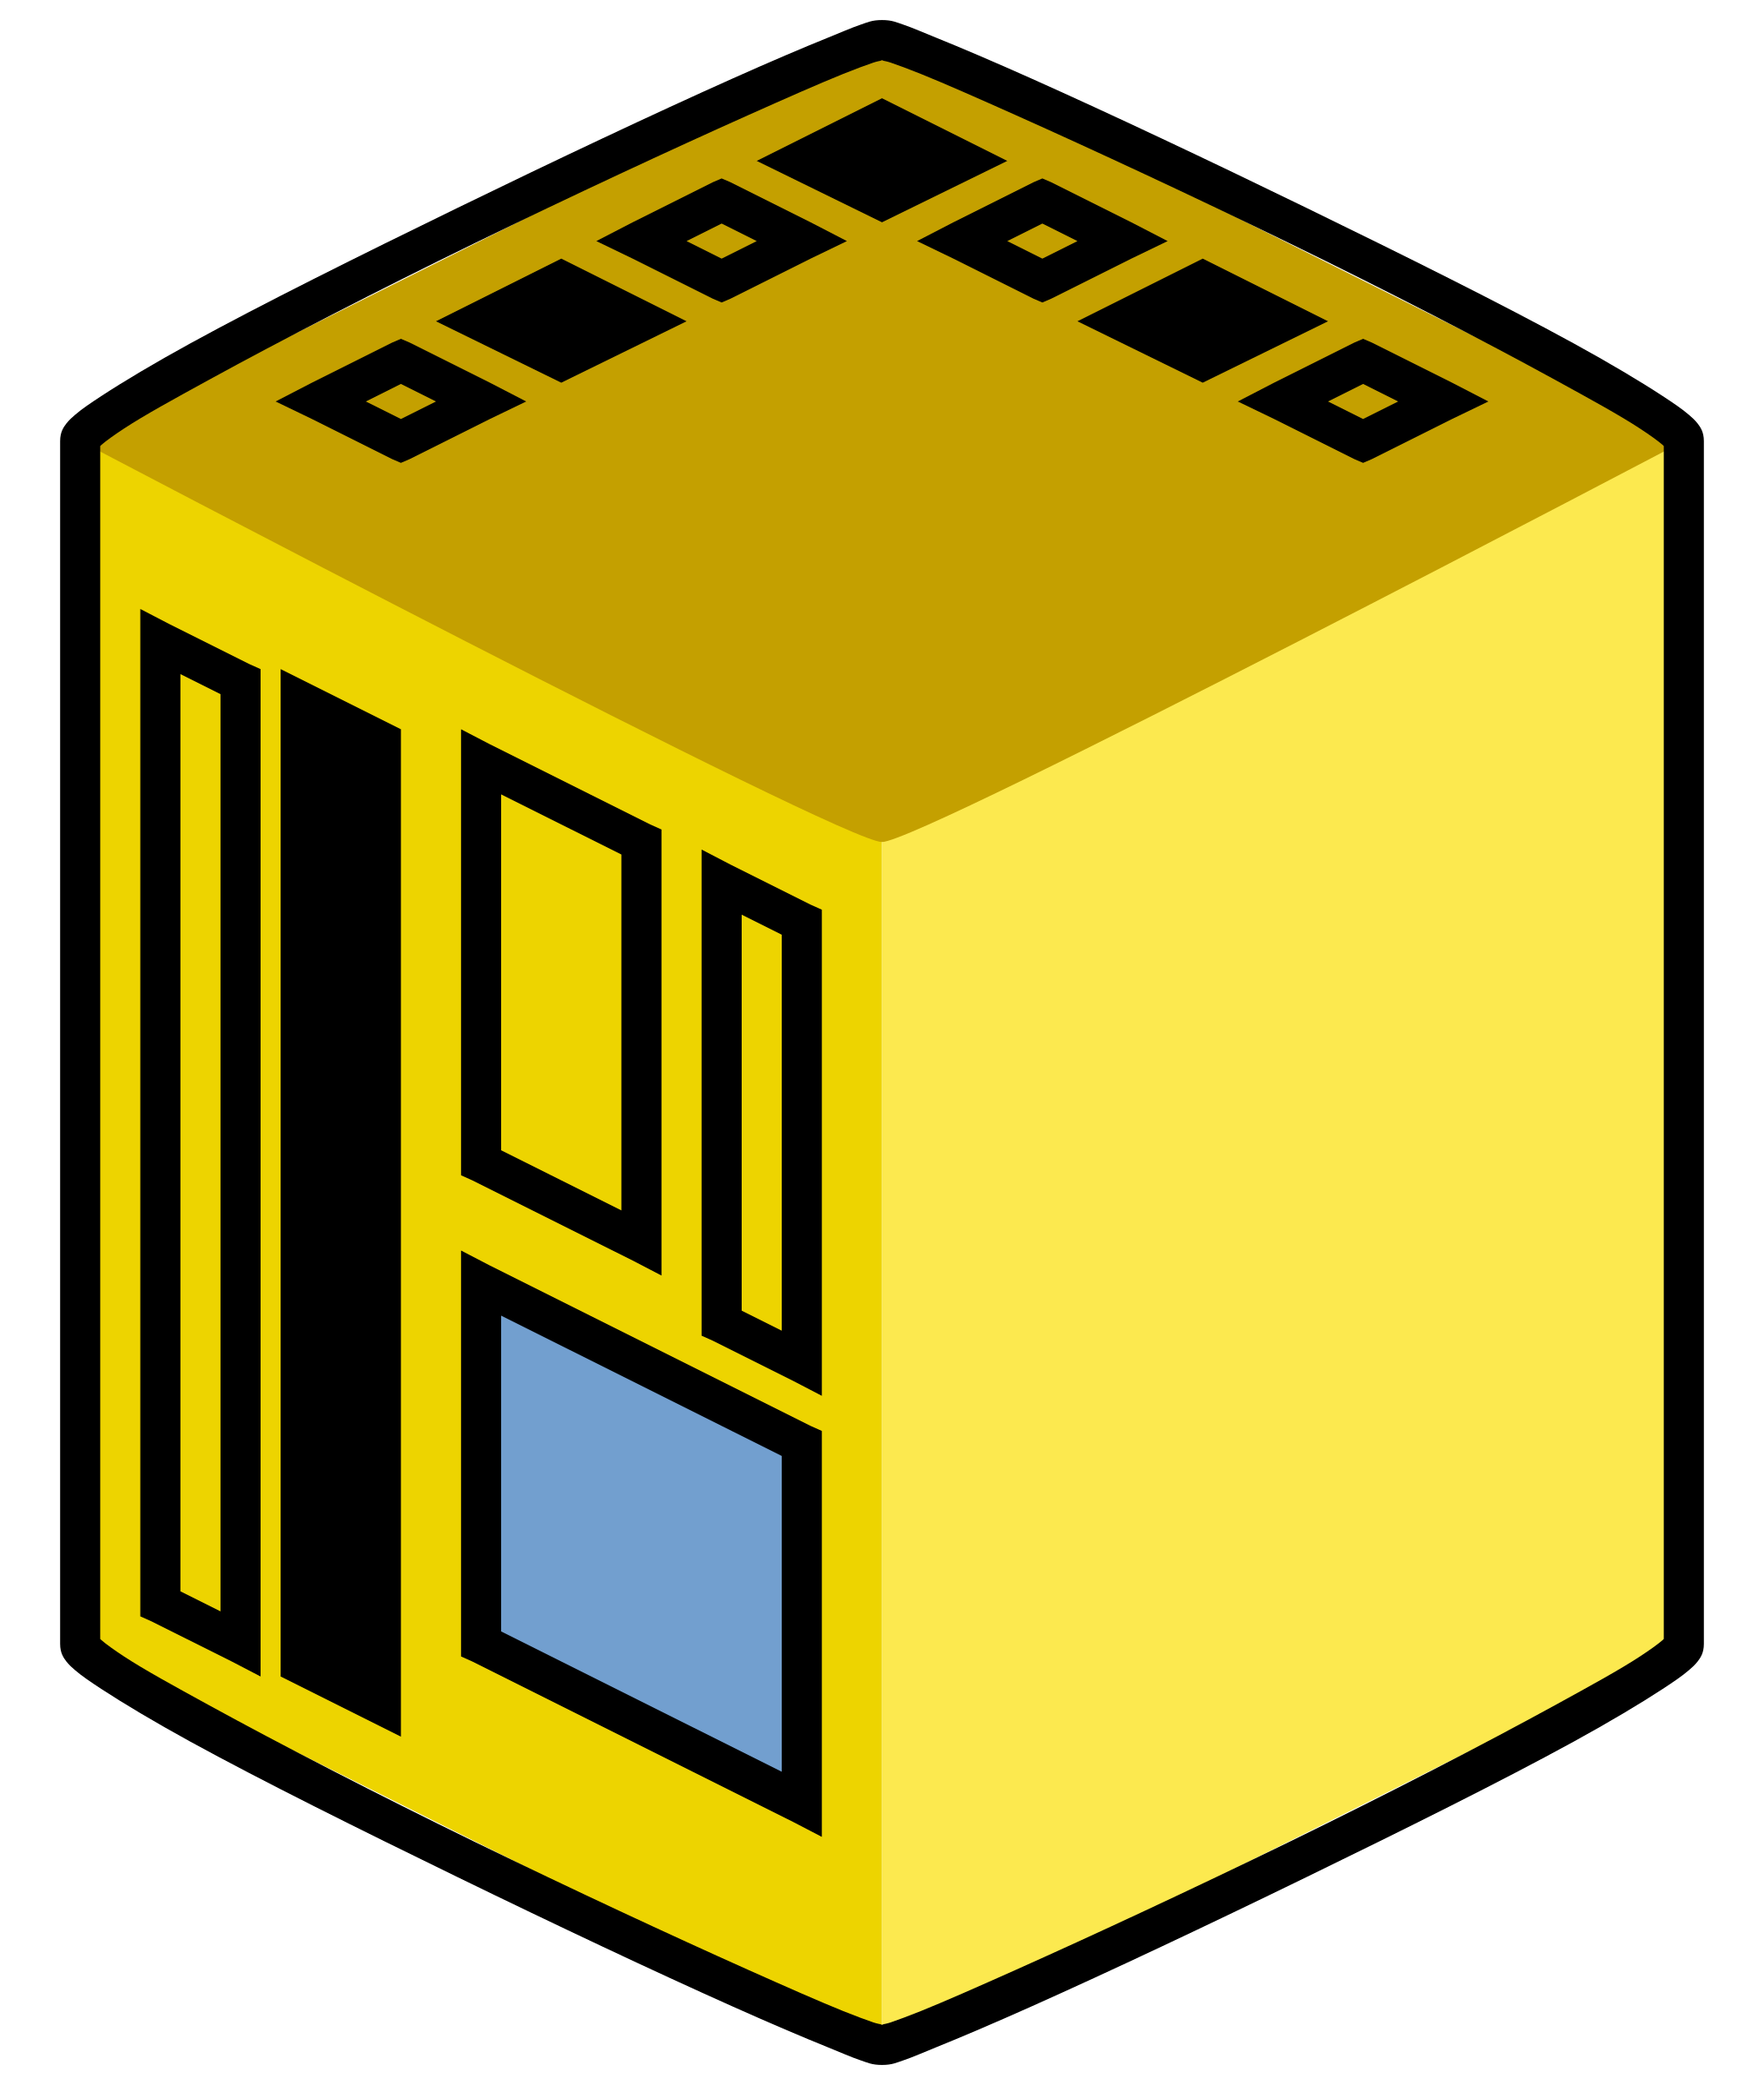 Central big image png. Computer clipart yellow